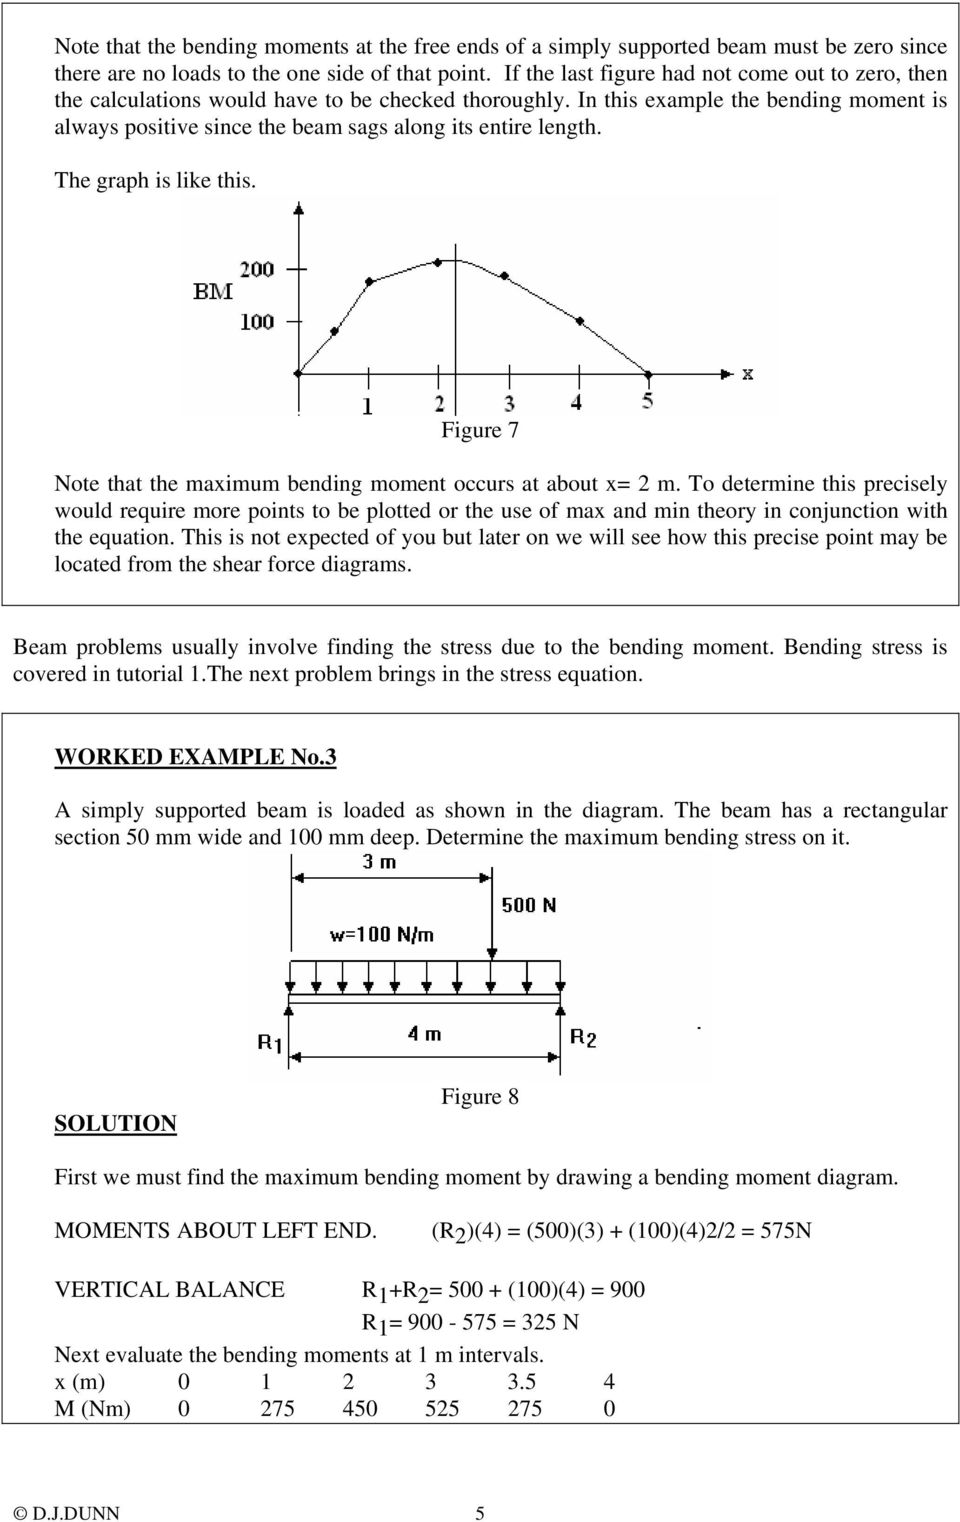 ENGINEERING SCIENCE H1 OUTCOME 1 - TUTORIAL 3 BENDING MOMENTS